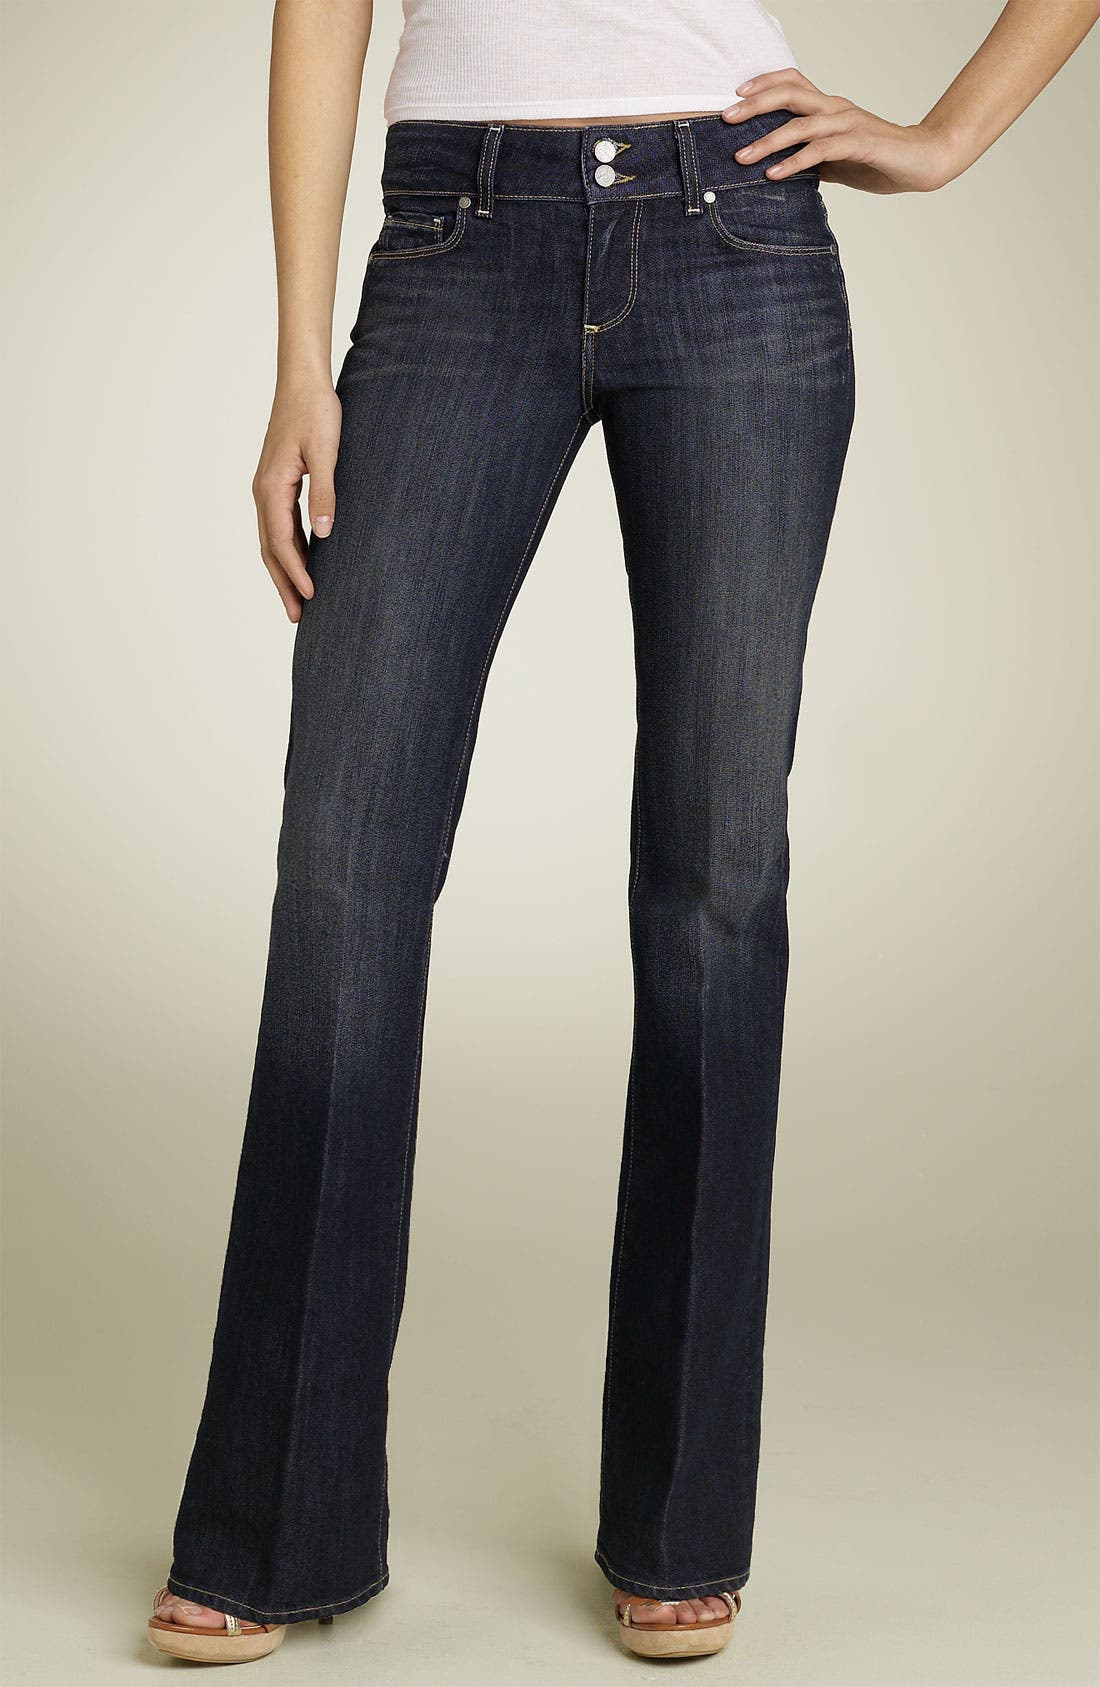 Alternate Image 1 Selected - Paige Denim 'Hidden Hills' Bootcut Stretch Jeans (McKinley)